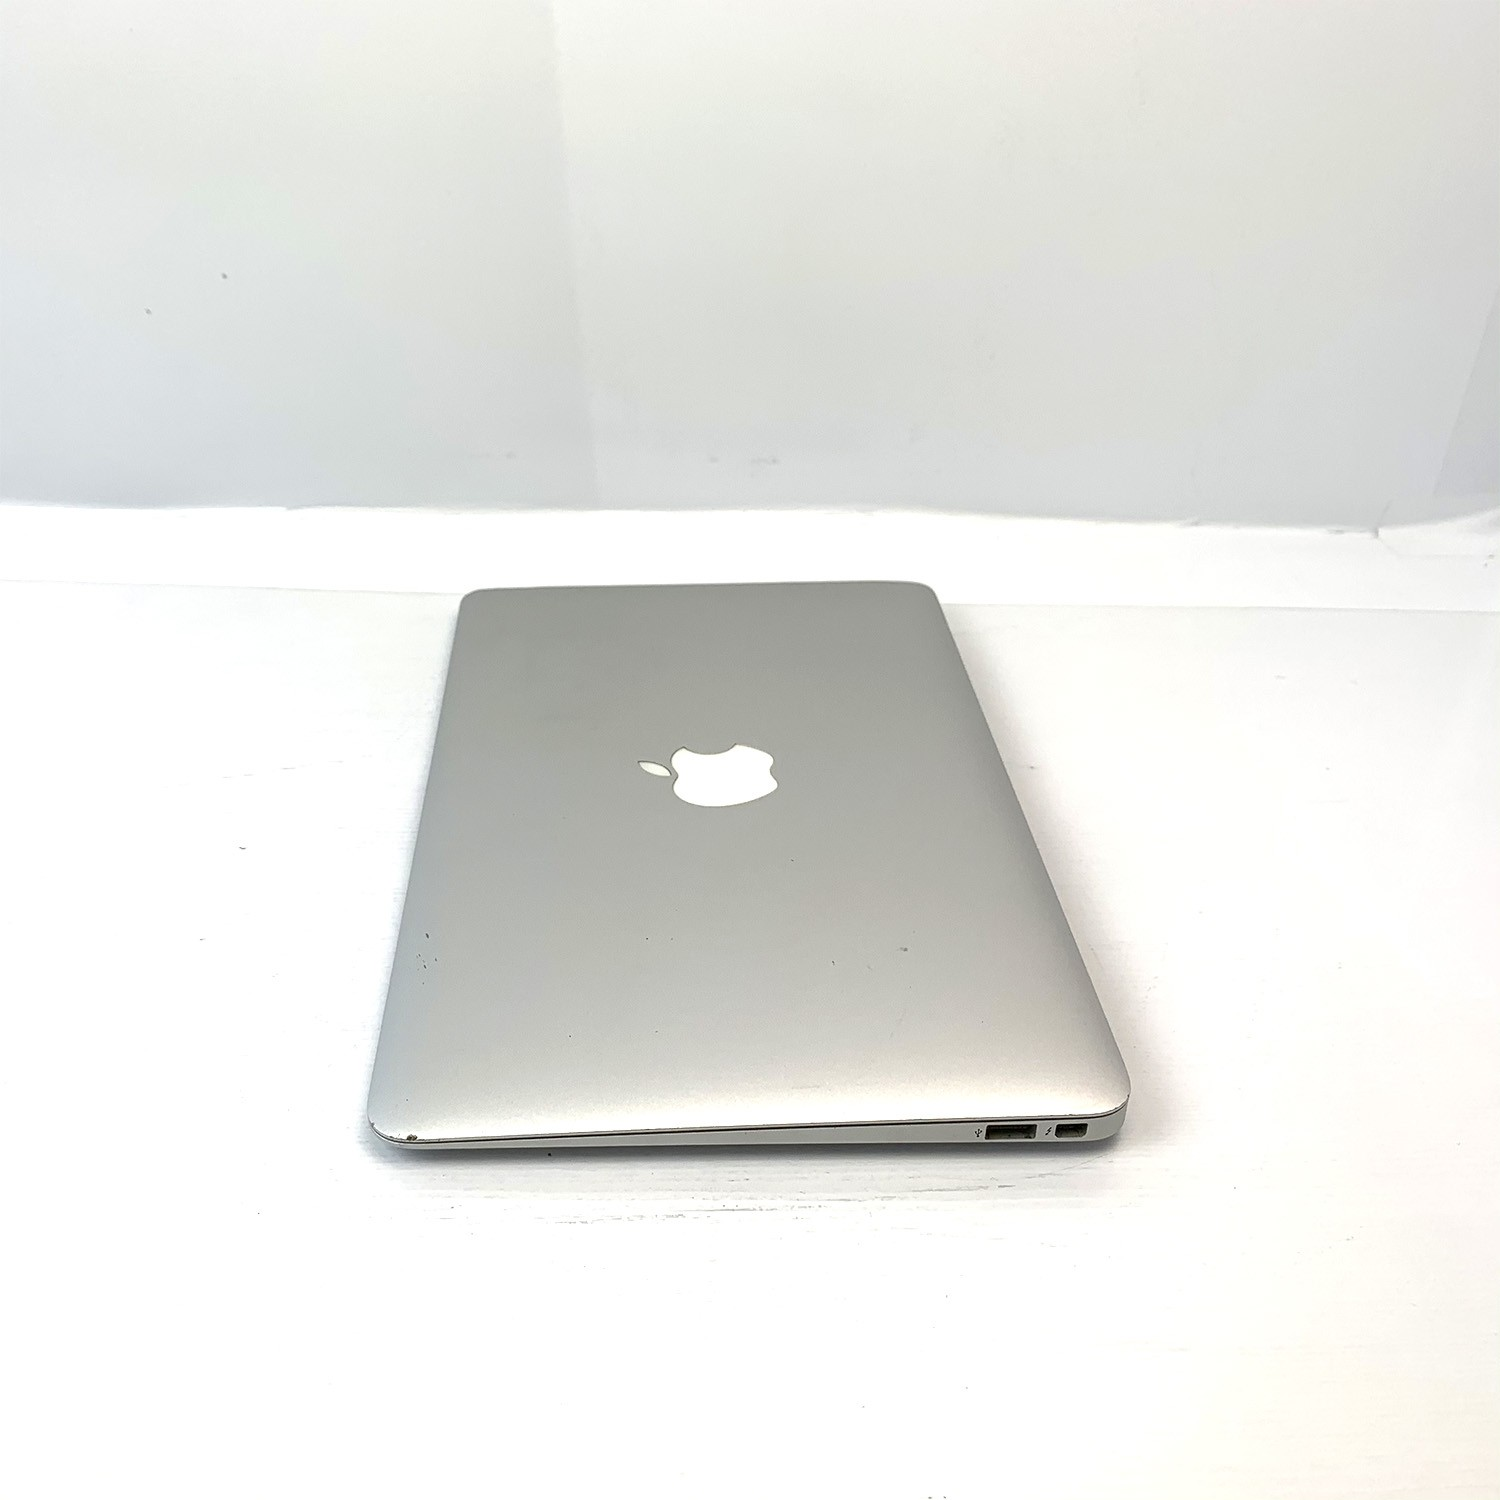 Macbook Air 11 i5 1.7Ghz 4GB 256GB SSD MD223LL/A Seminovo